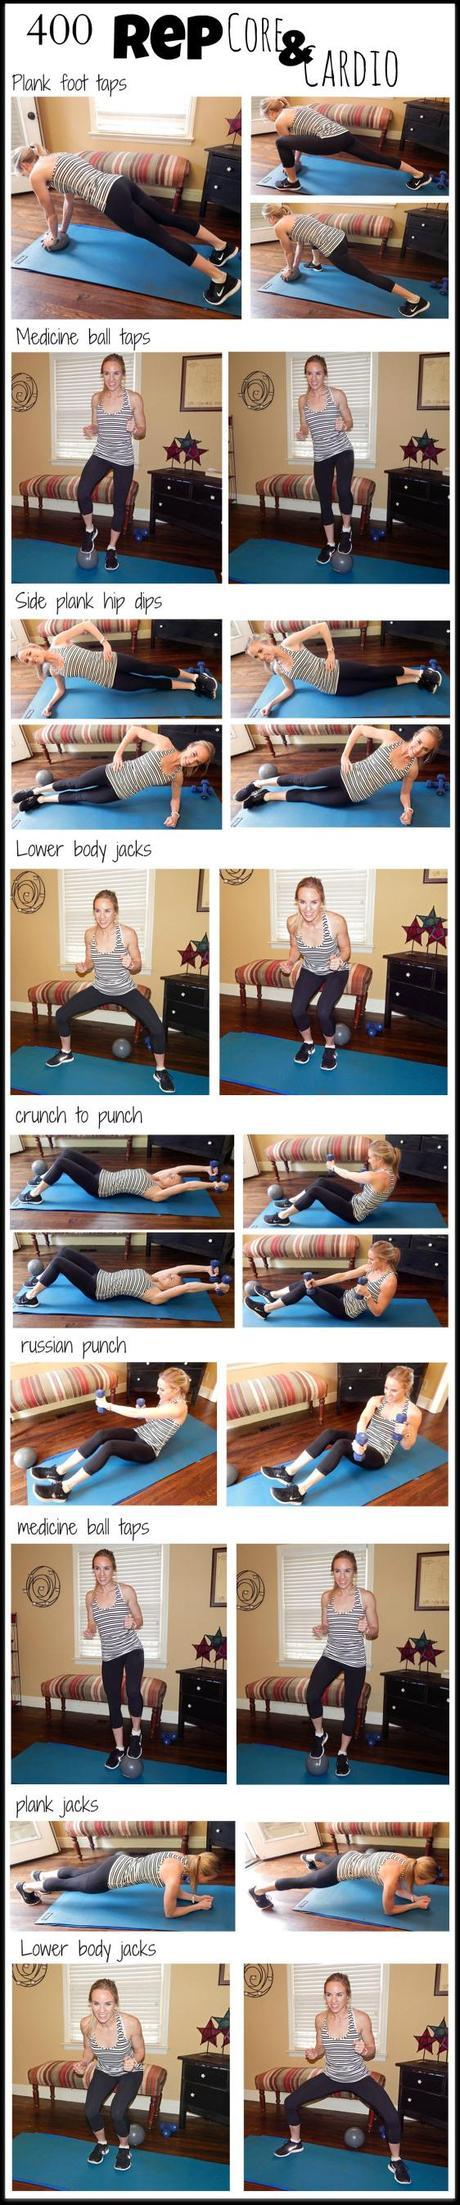 core and cardio